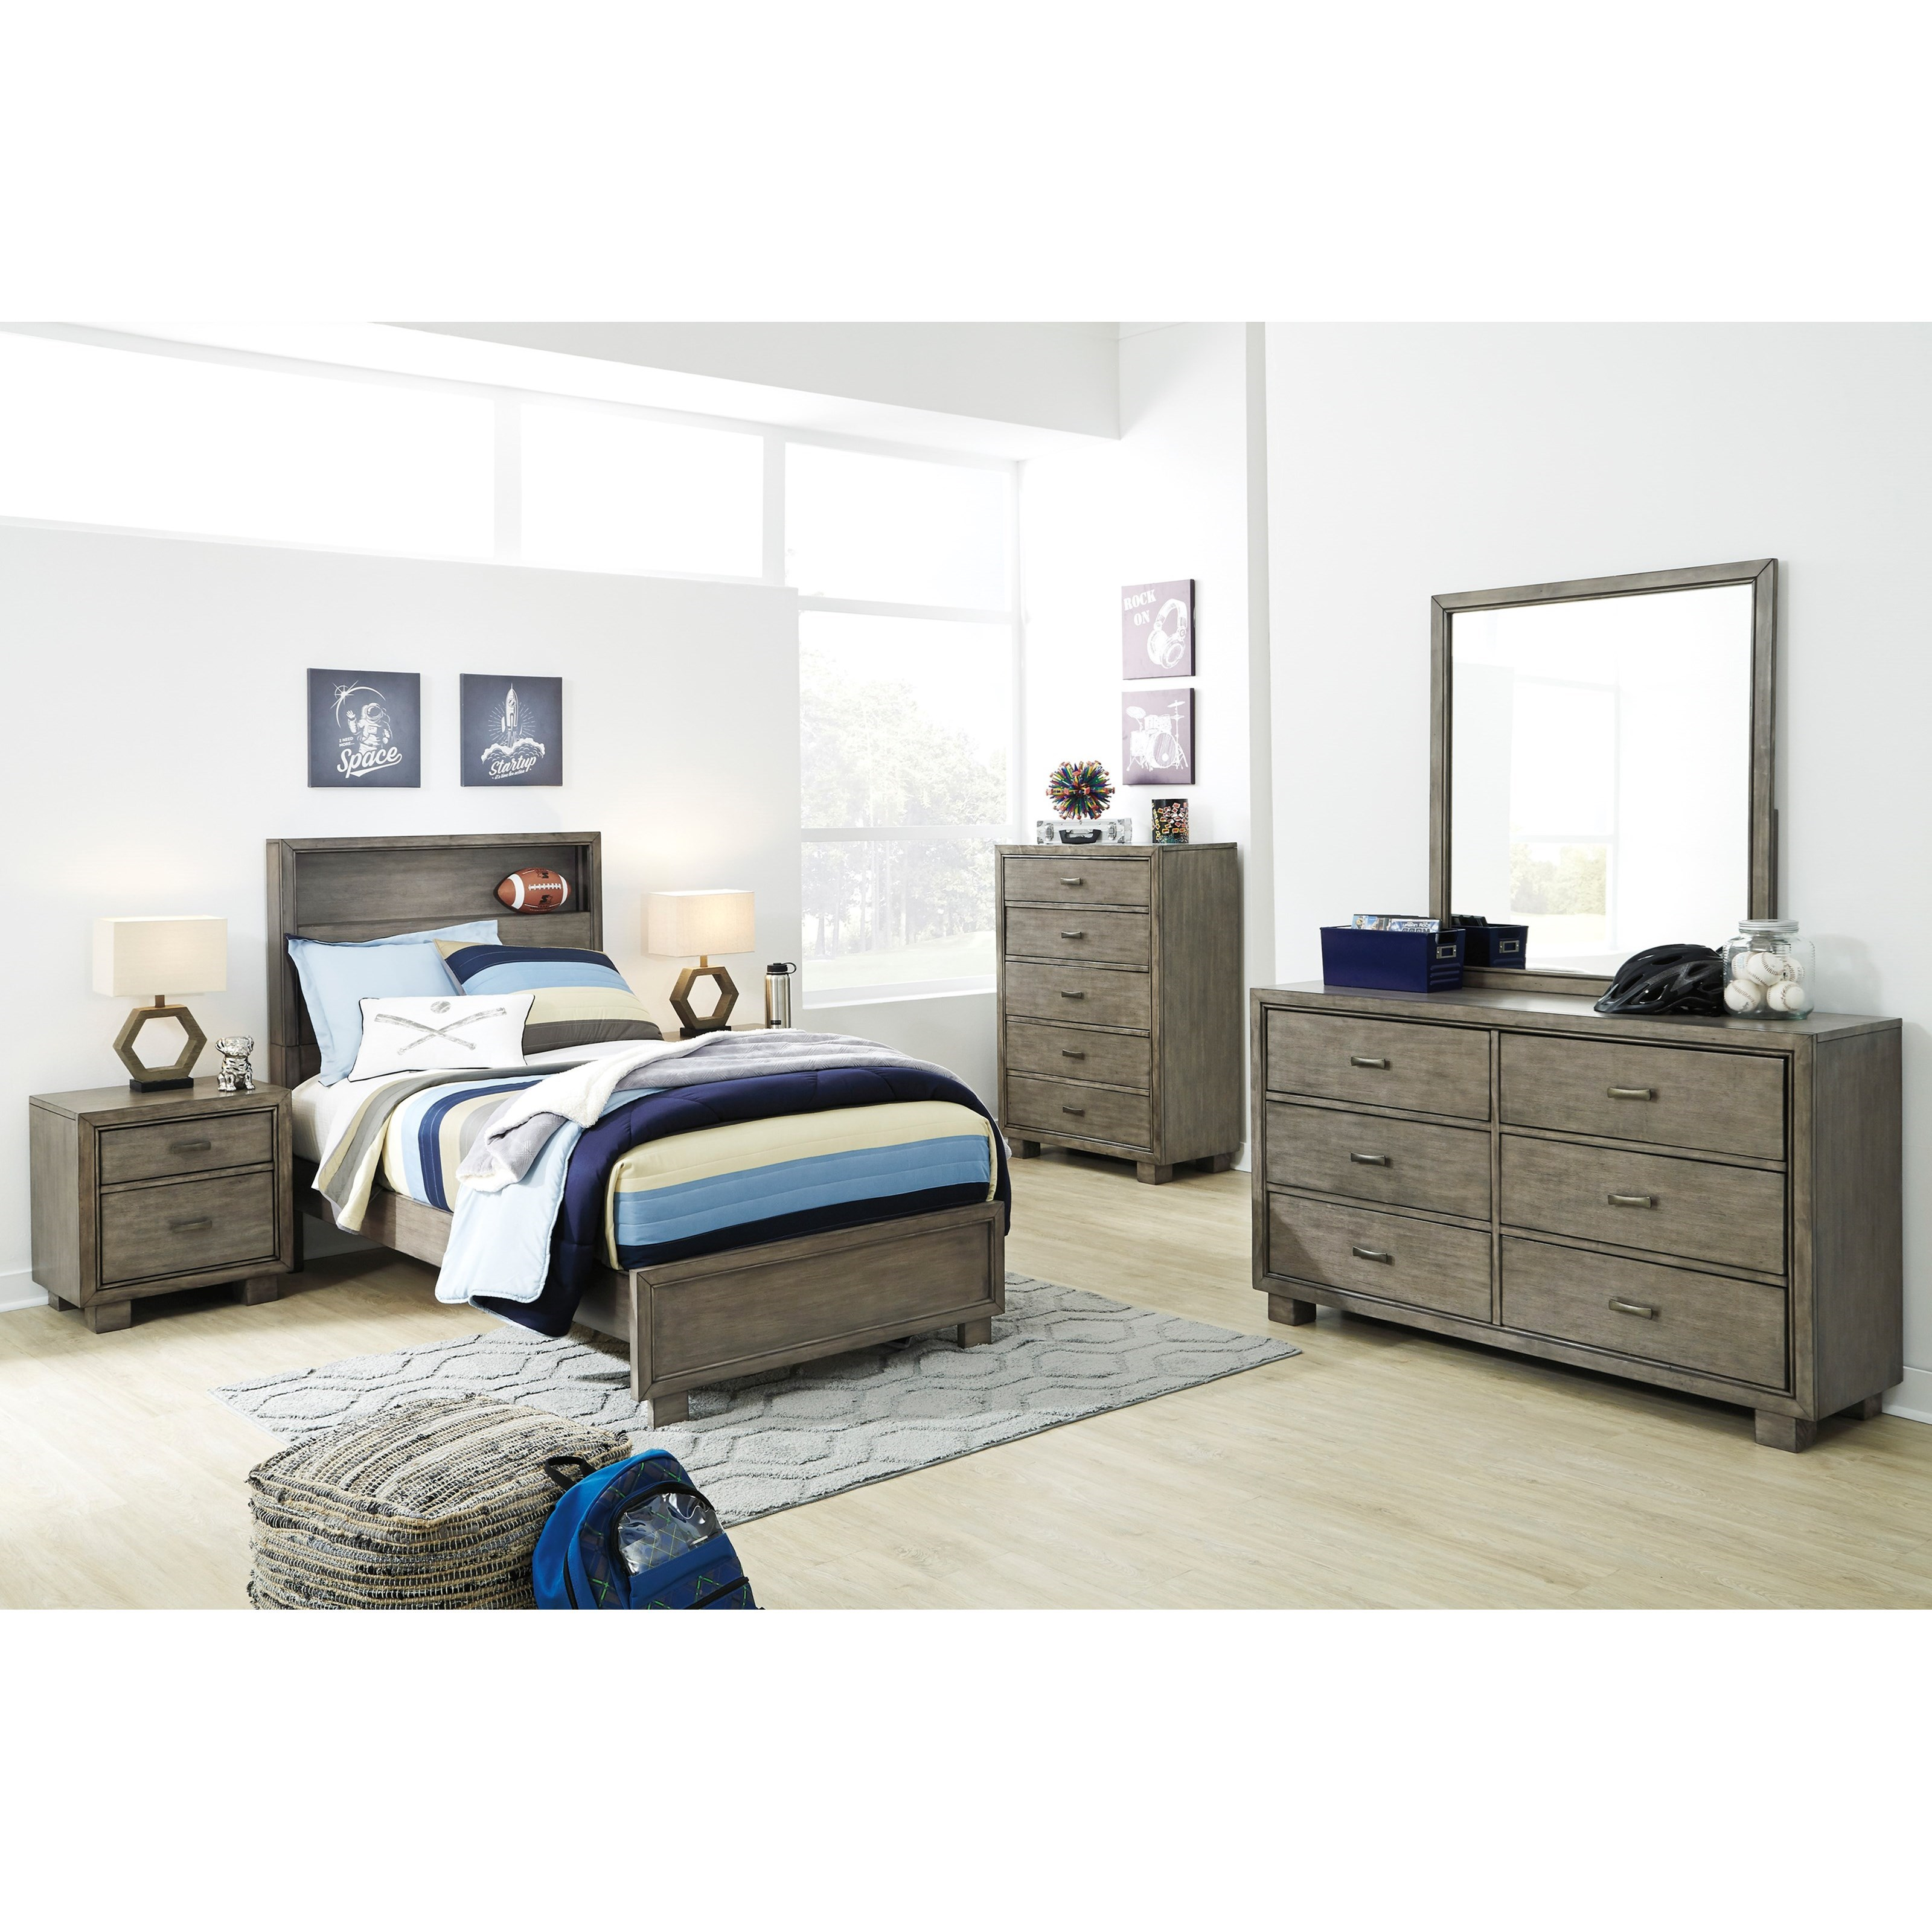 Arnett Twin Bedroom Group by Signature Design by Ashley at Rife's Home Furniture